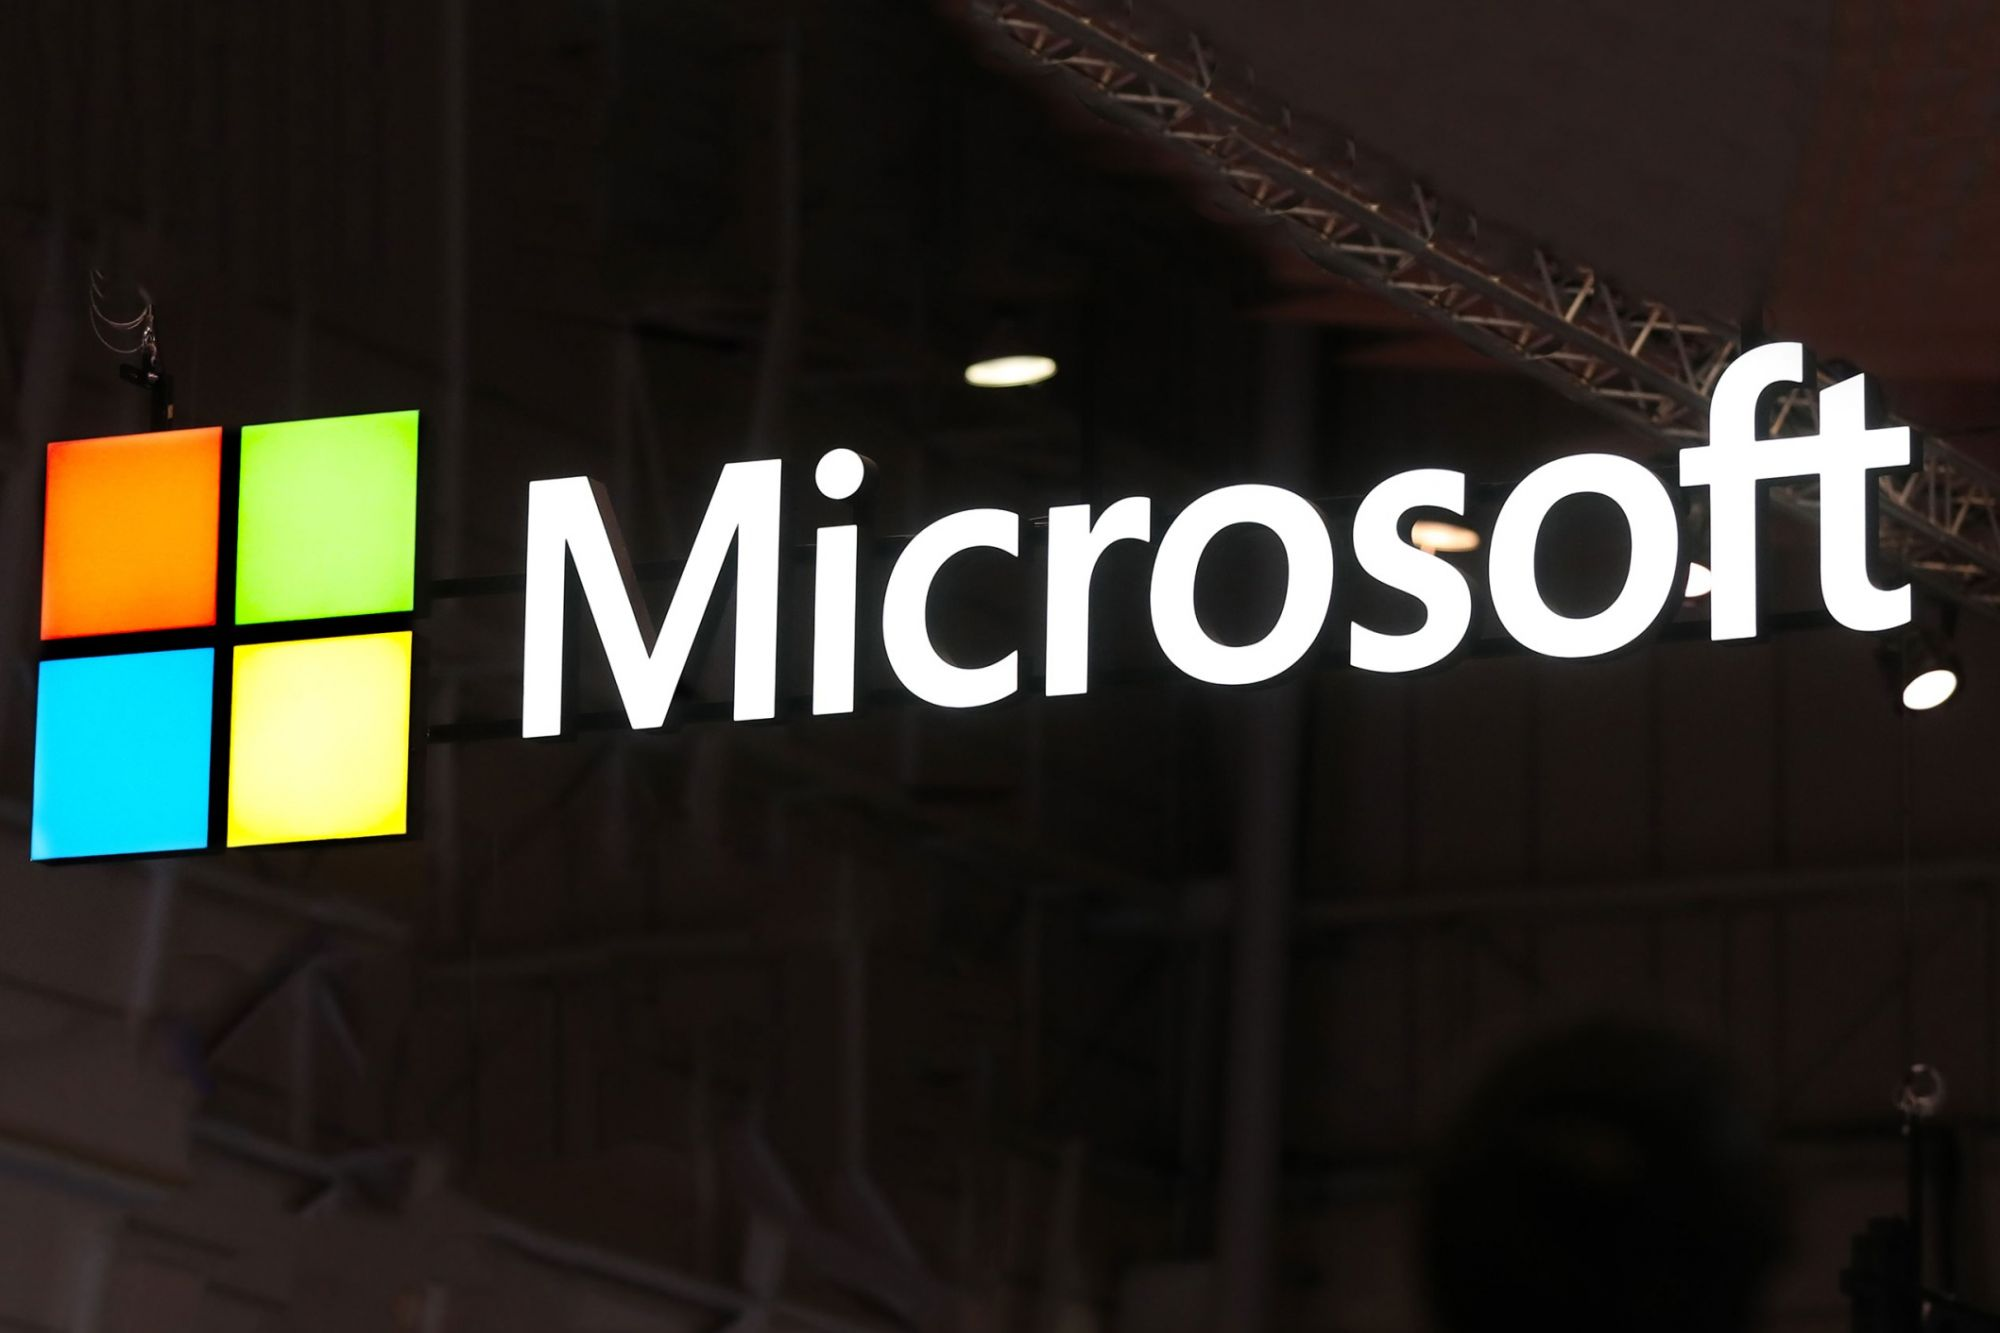 Microsoft to Go 'Carbon Negative' by 2030 to Combat Climate Change